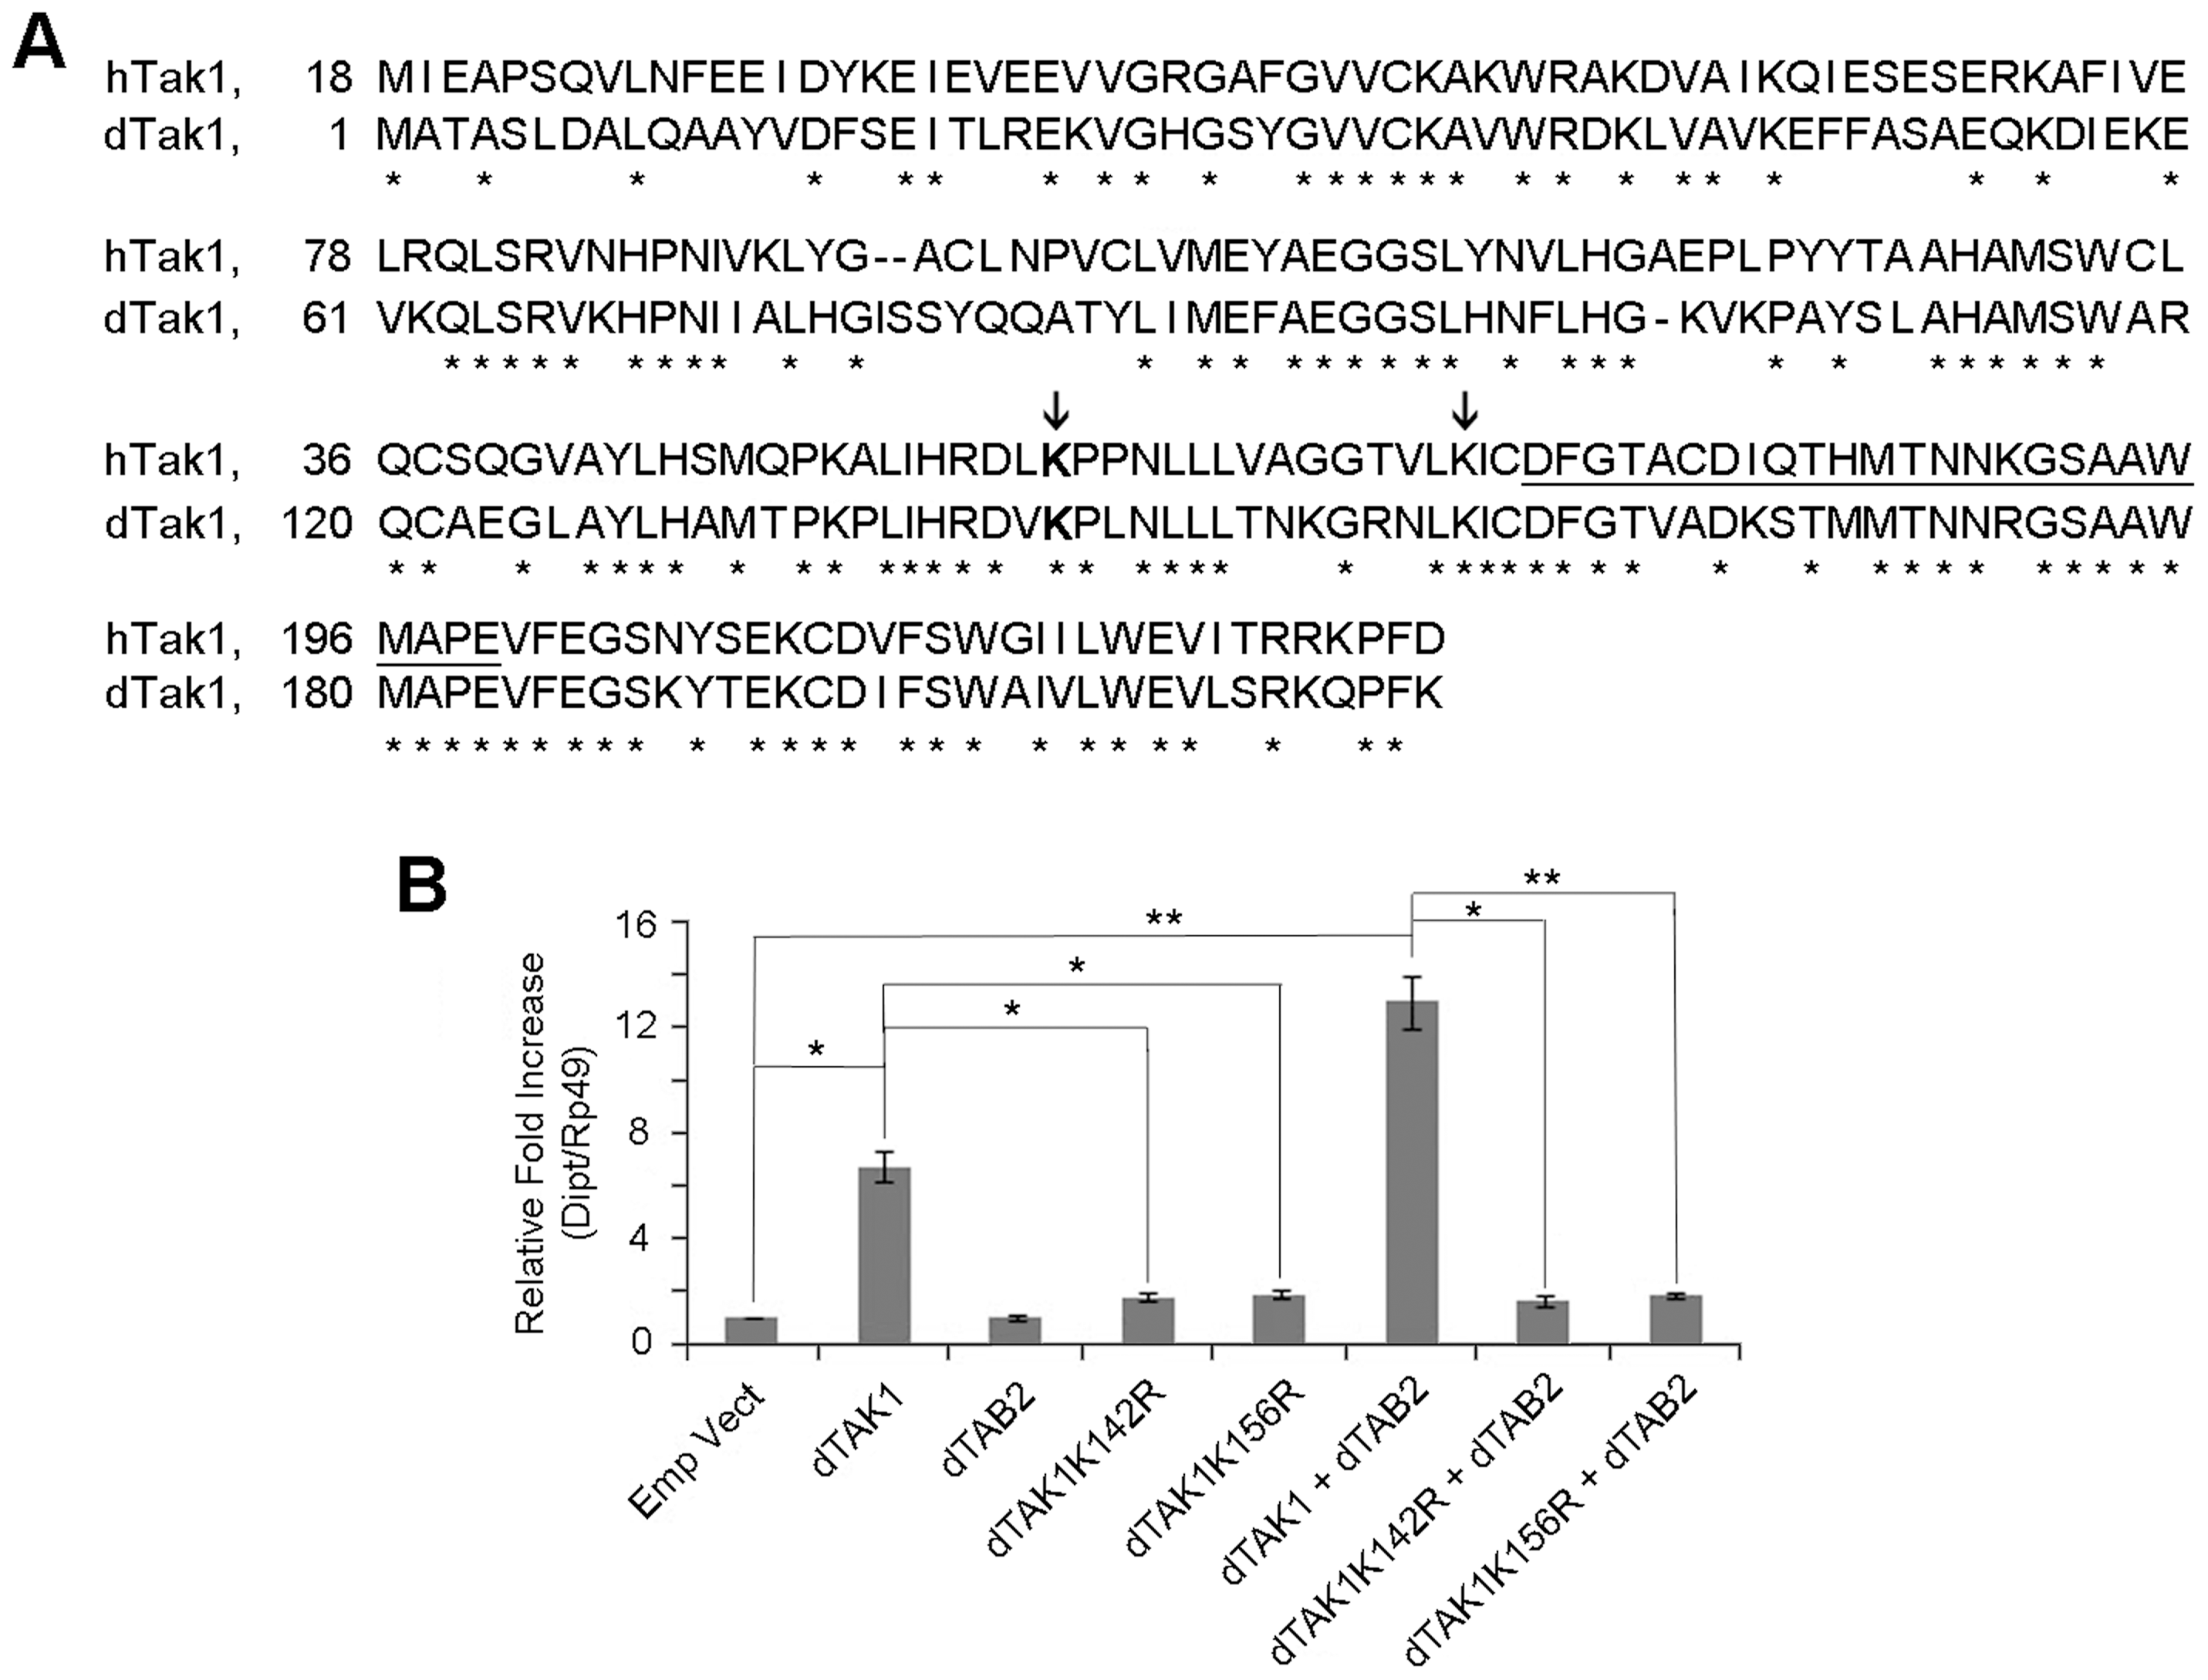 Lys 142 and Lys 156 of dTAK1 are essential for immune signalling.